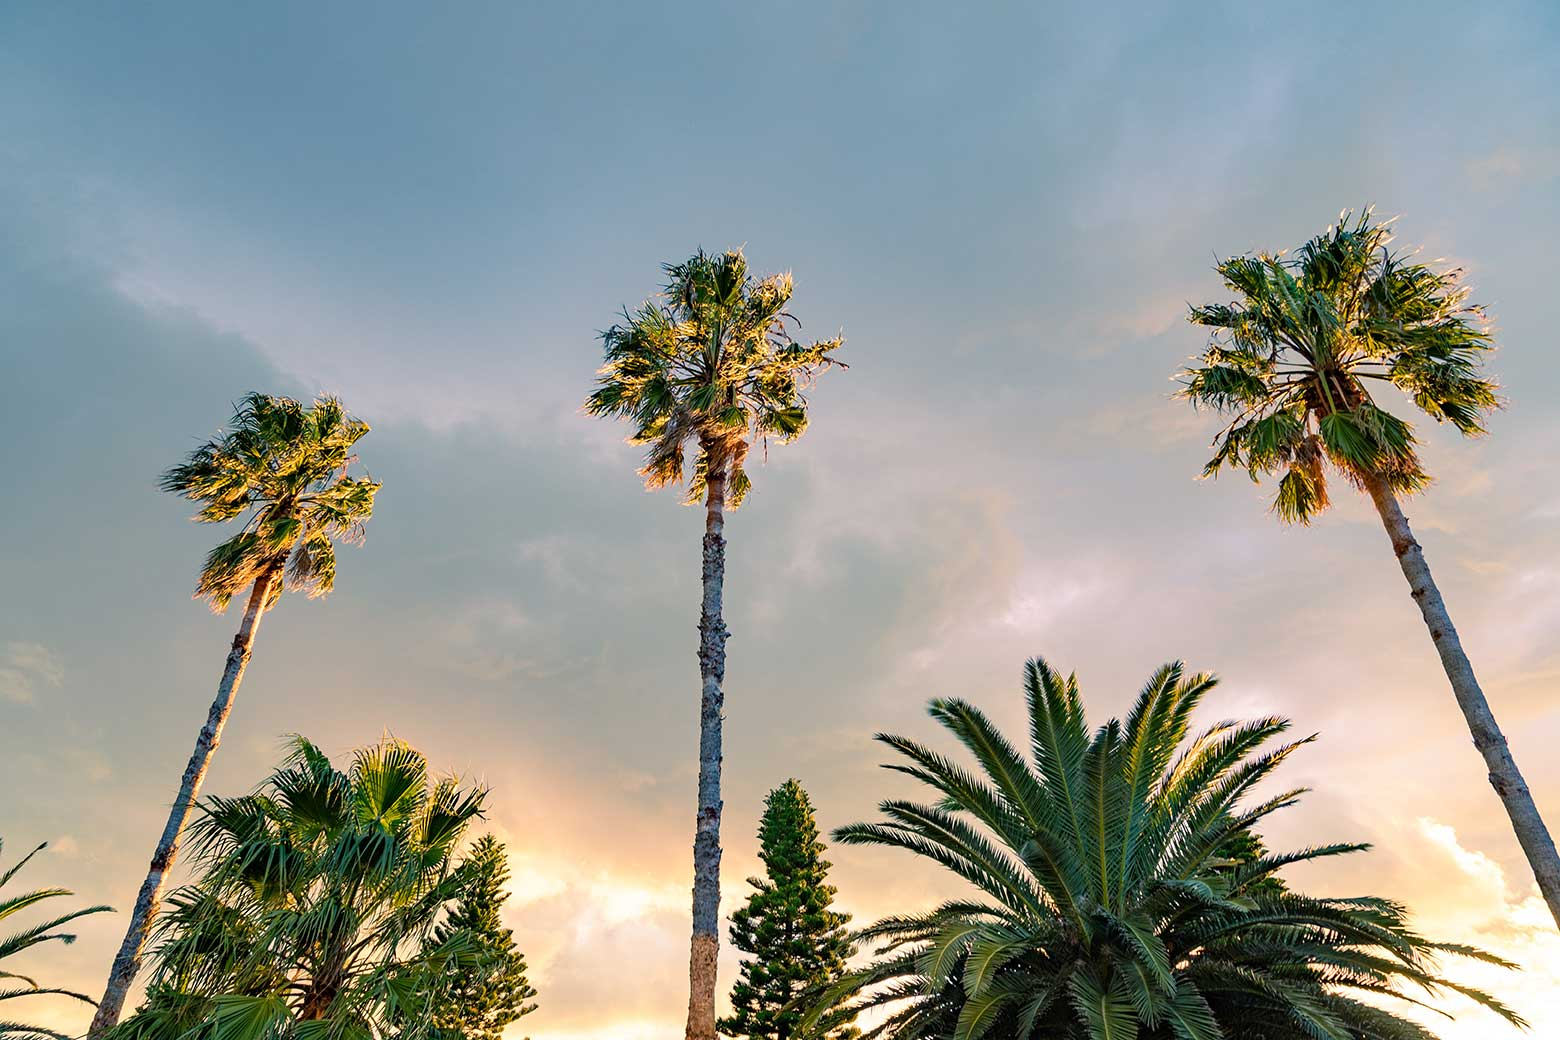 Vibrant palm trees against a backdrop of sunlit clouds.